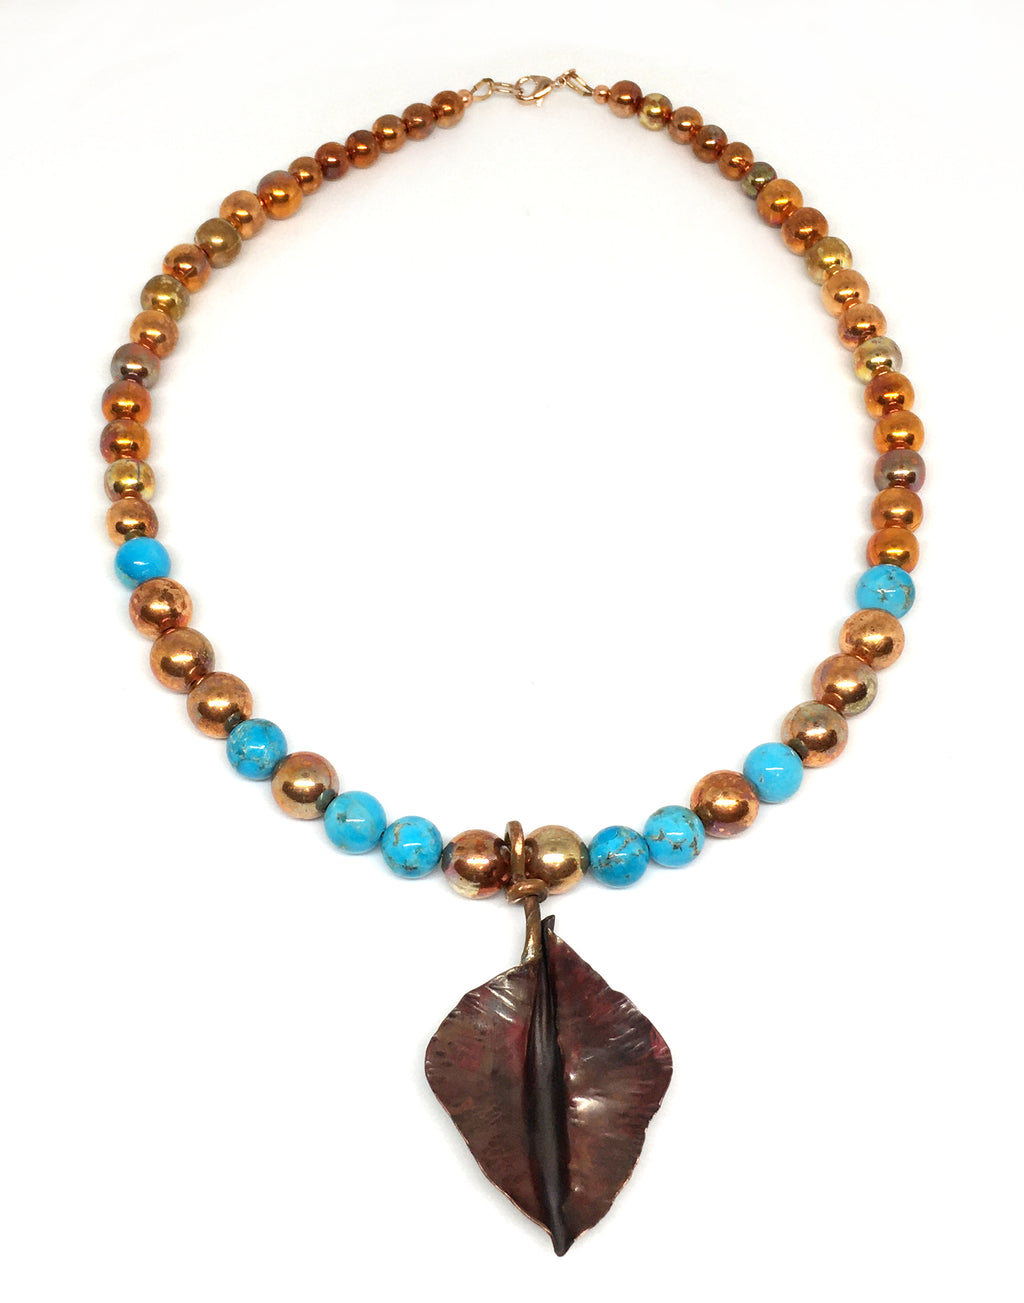 kingman turquoise and flame painted copper bead necklace with fold formed copper leaf